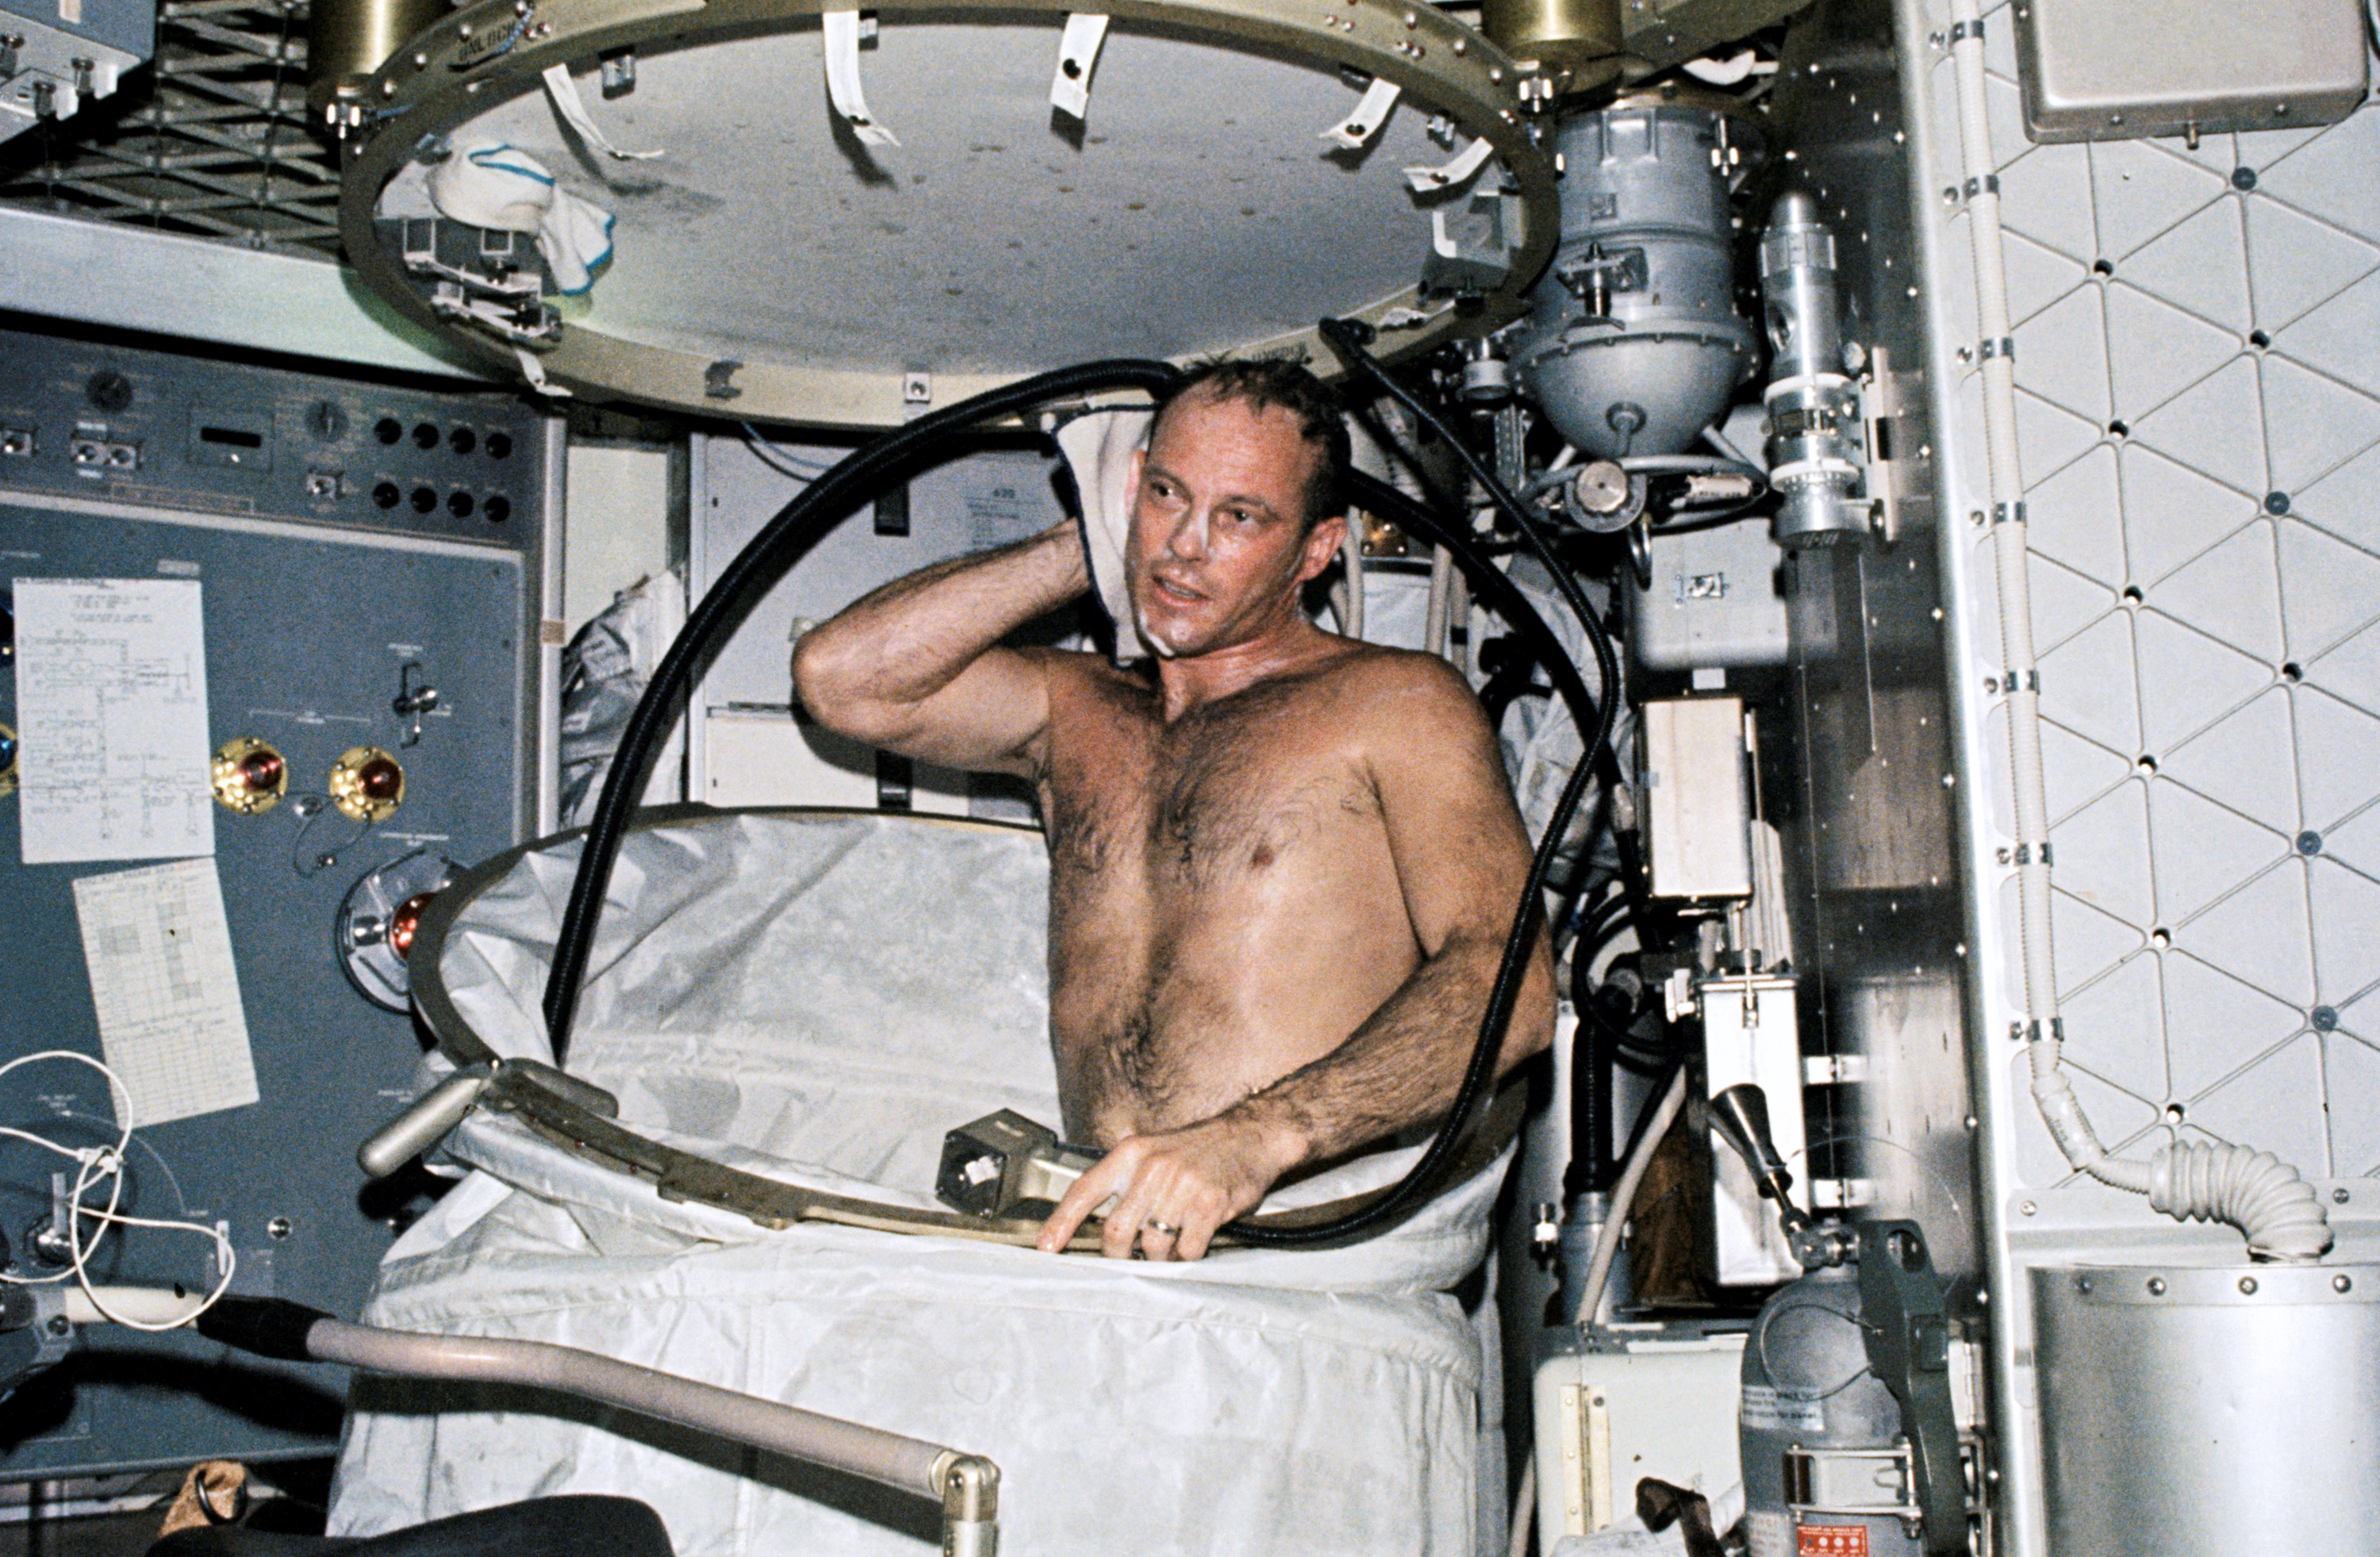 http://upload.wikimedia.org/wikipedia/commons/3/3b/Showering_on_Skylab_-_GPN-2000-001710.jpg